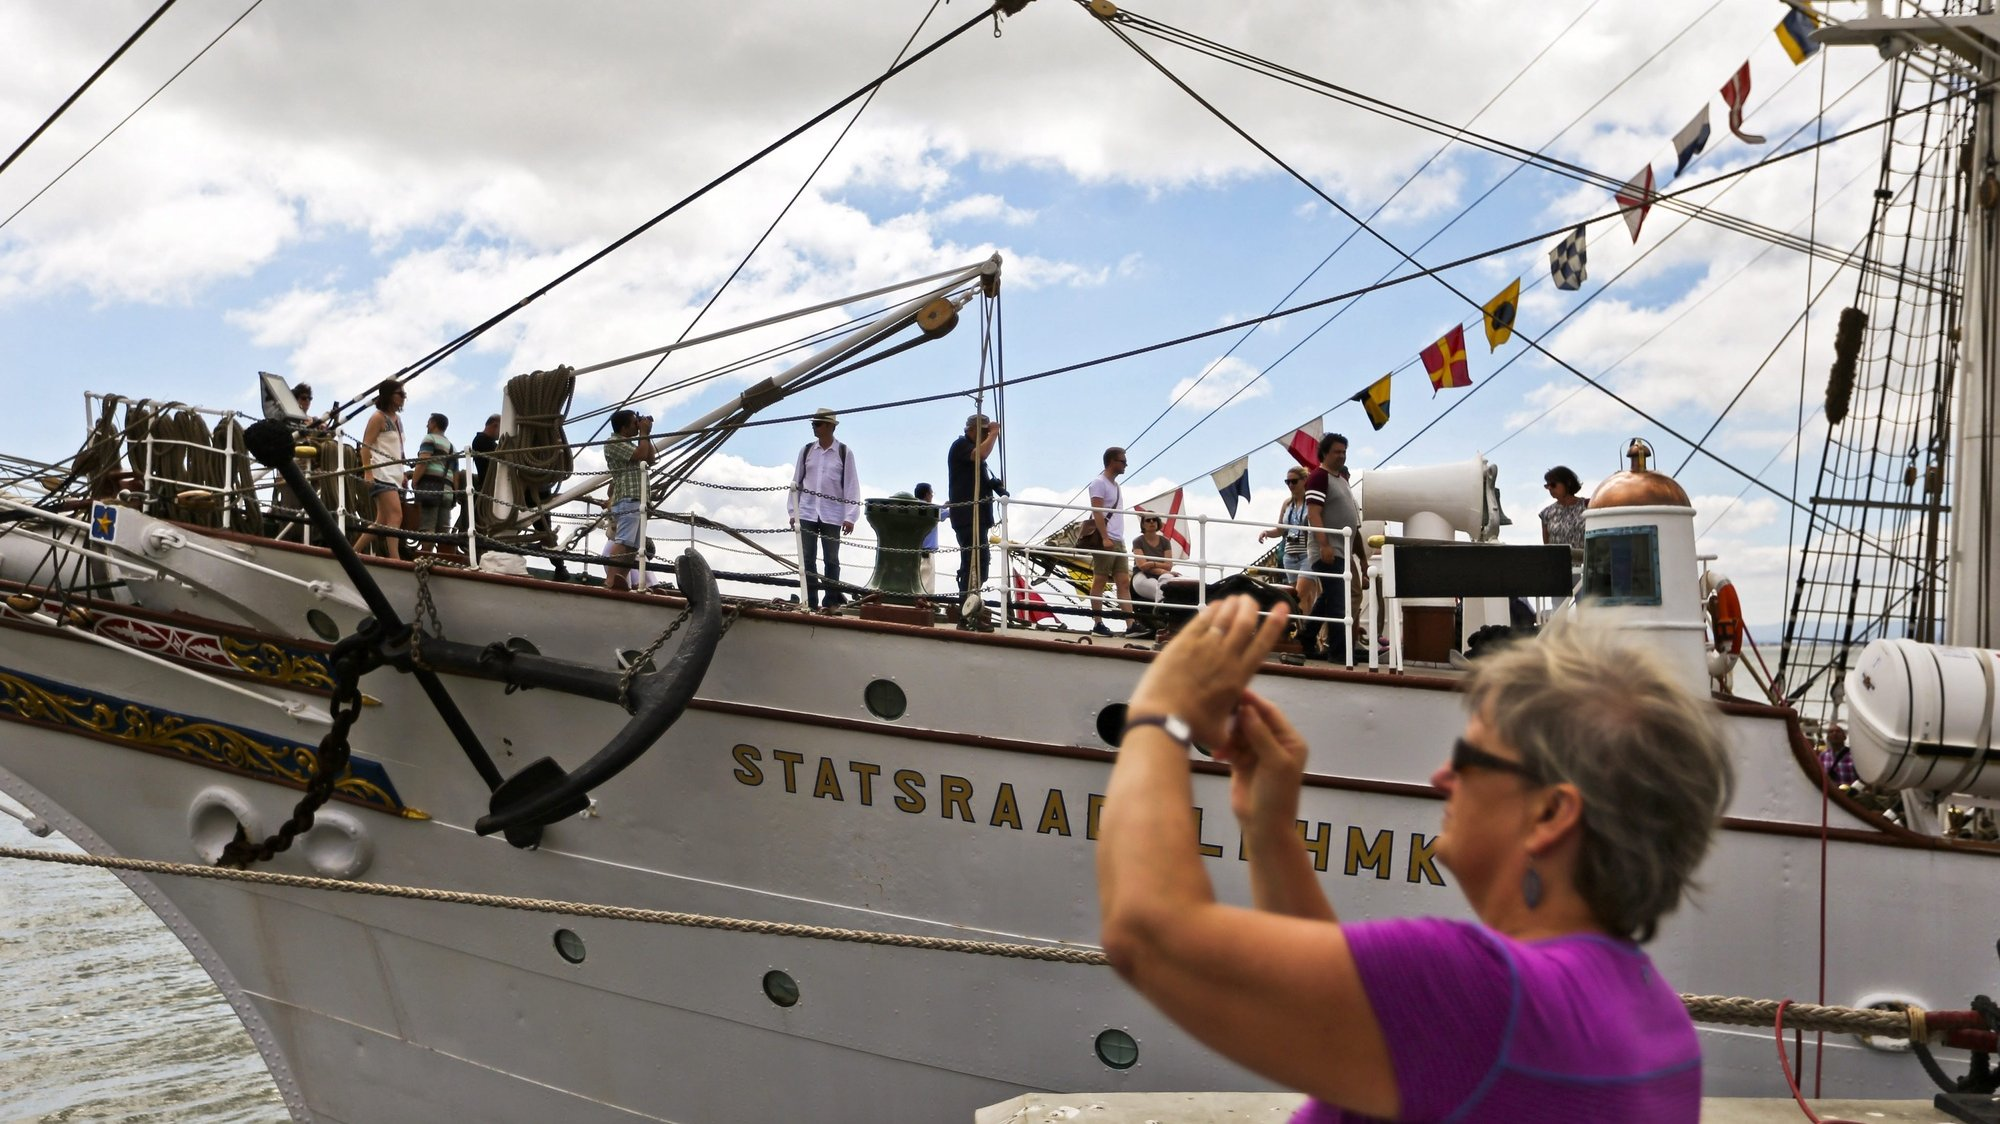 epa05436635 People visit the Norway's ship Statsraad Lehmkuhl  at Santa Apolonia dock during the Tall Ships Races Lisbon 2016, in Lisbon, Portugal, 22 July 2016. The event celebrates its 60th anniversary this year.  EPA/MARIO CRUZ